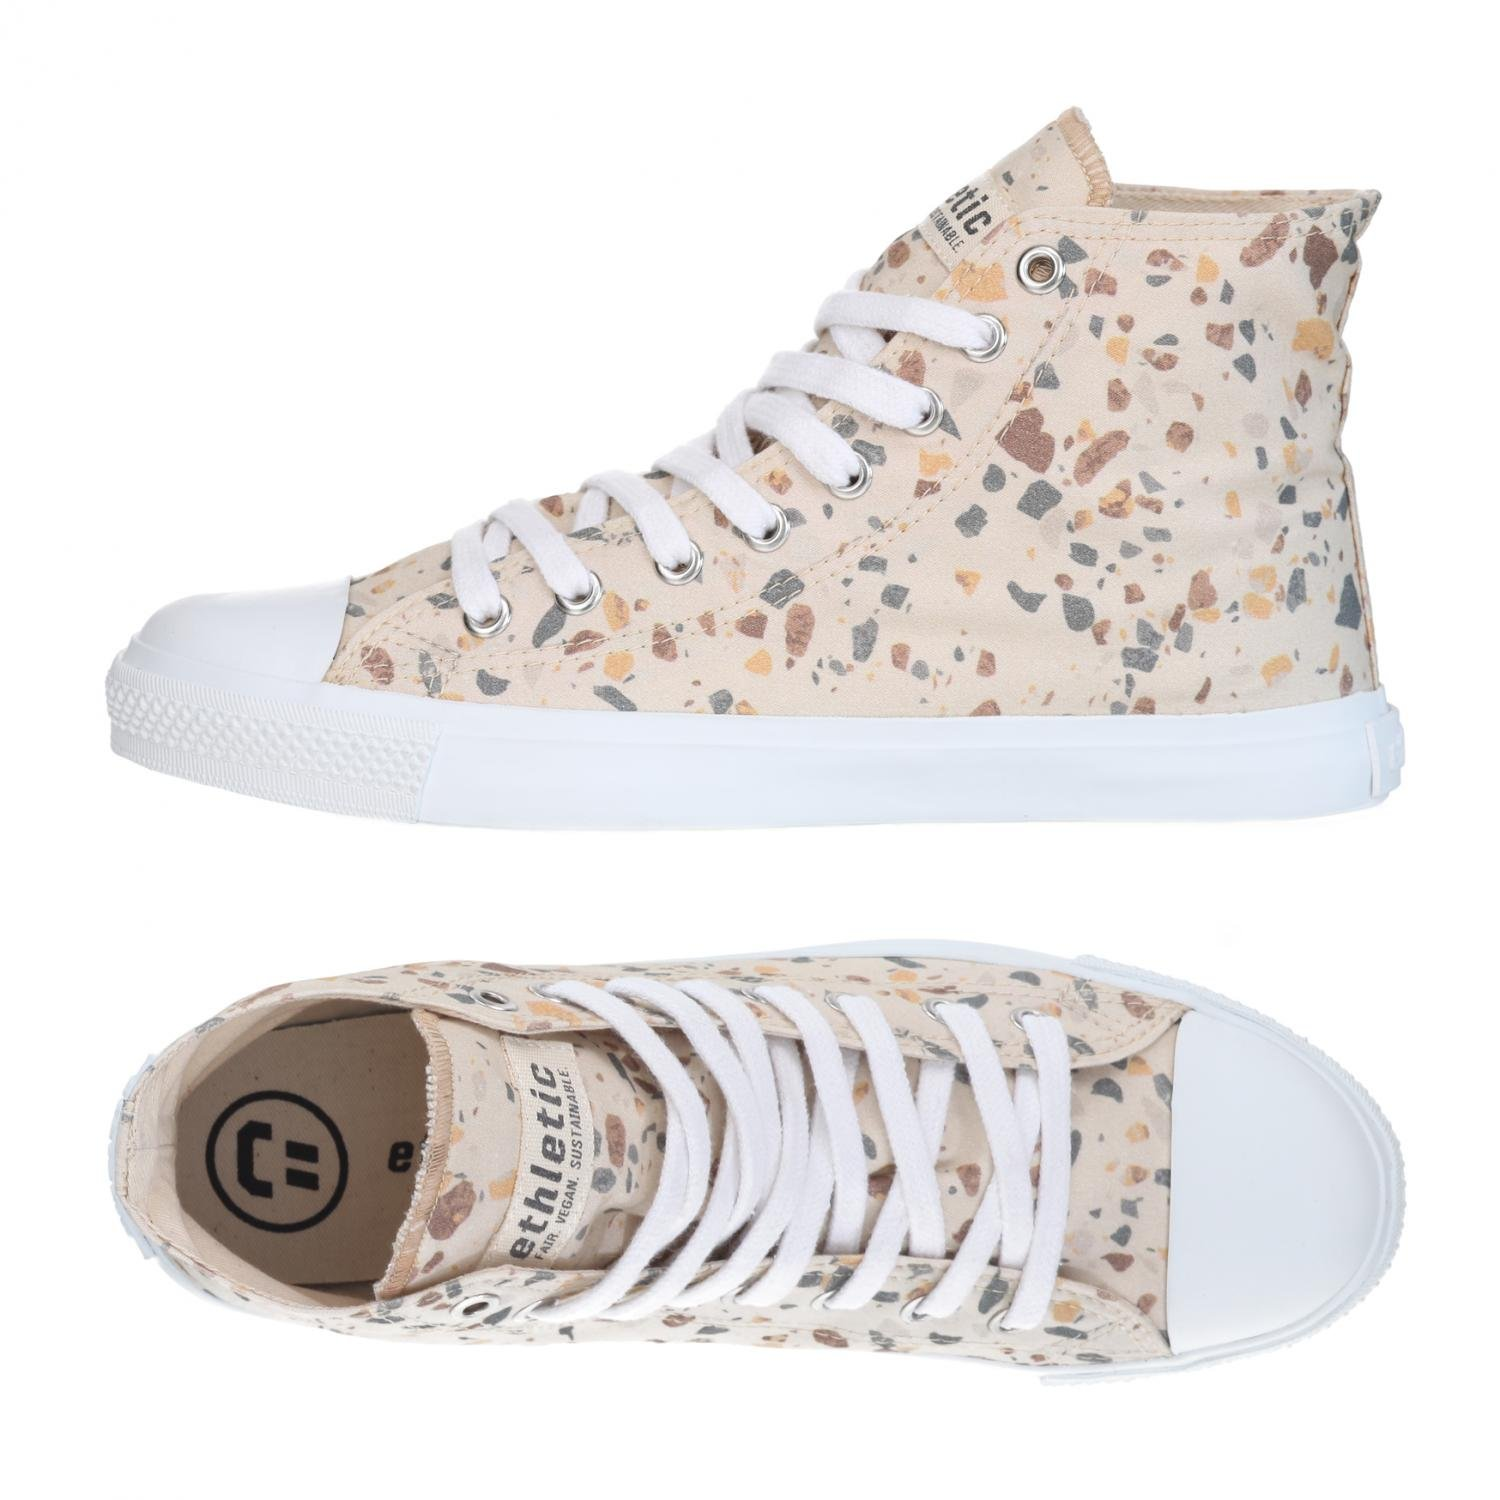 Ethletic Turnschuhe Vegan Hicut Collection Collection Collection 18 - Farbe terrazzo Caramel Weiß Aus Bio-Baumwolle  638ac4